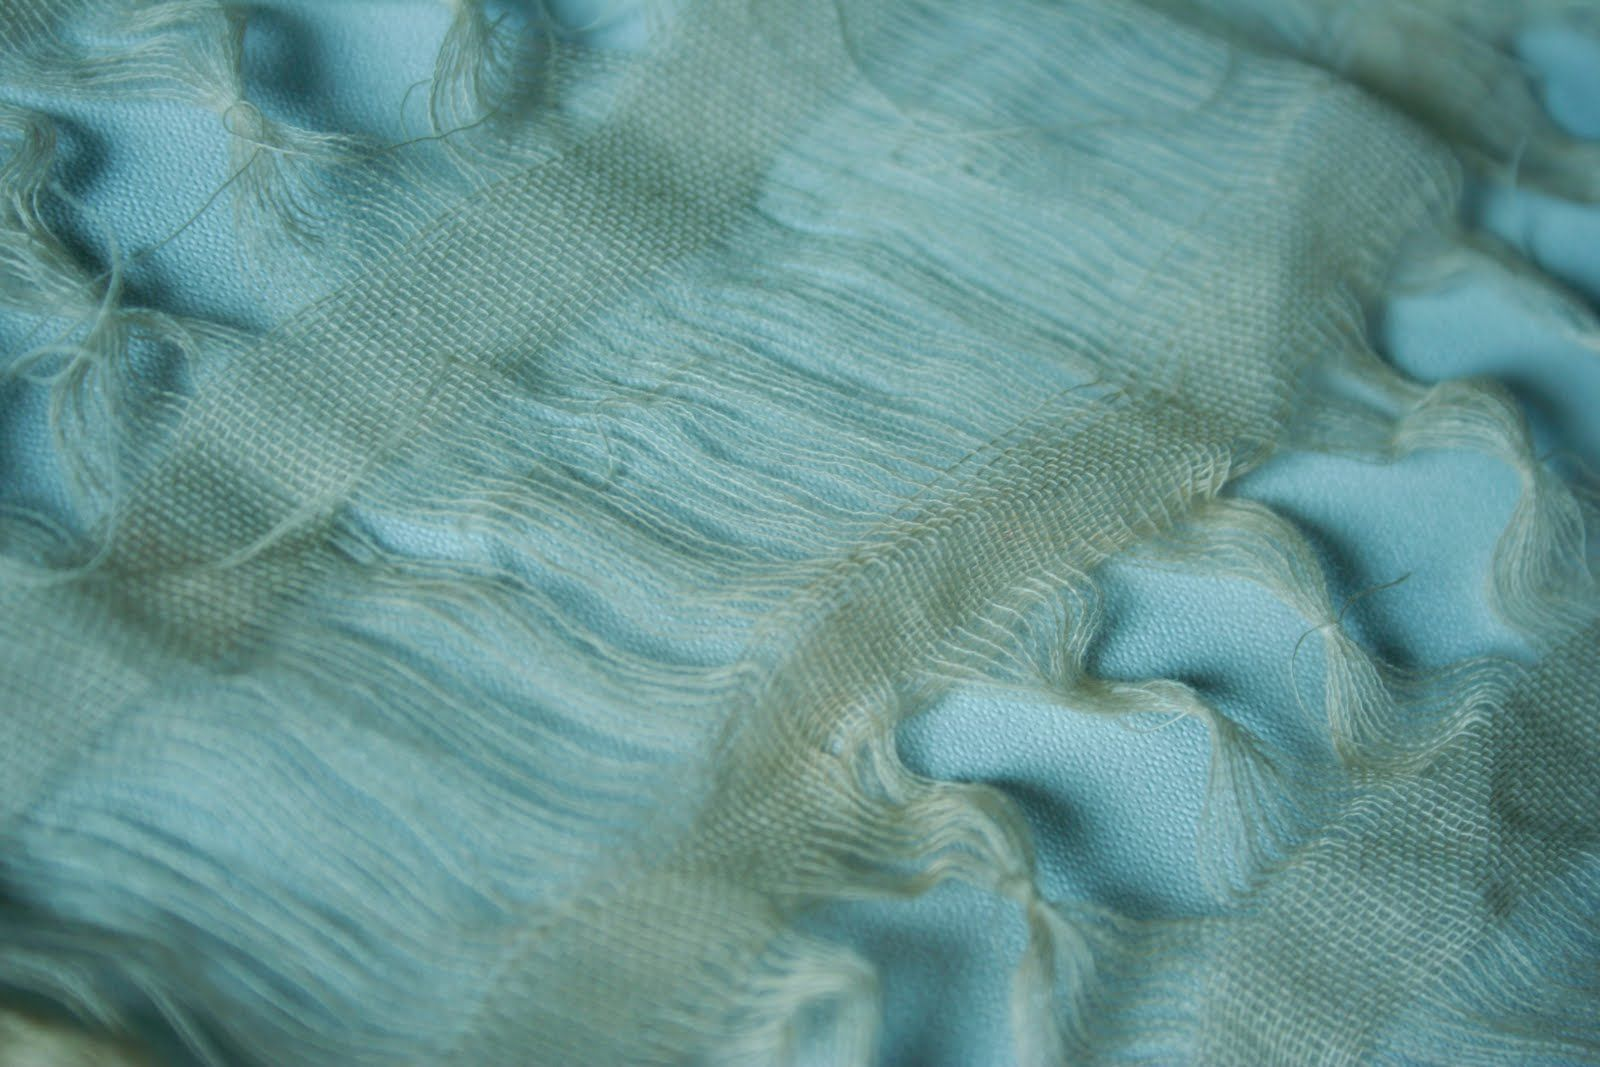 Fabric manipulation   From one linen fabric to a whole different state of appearance